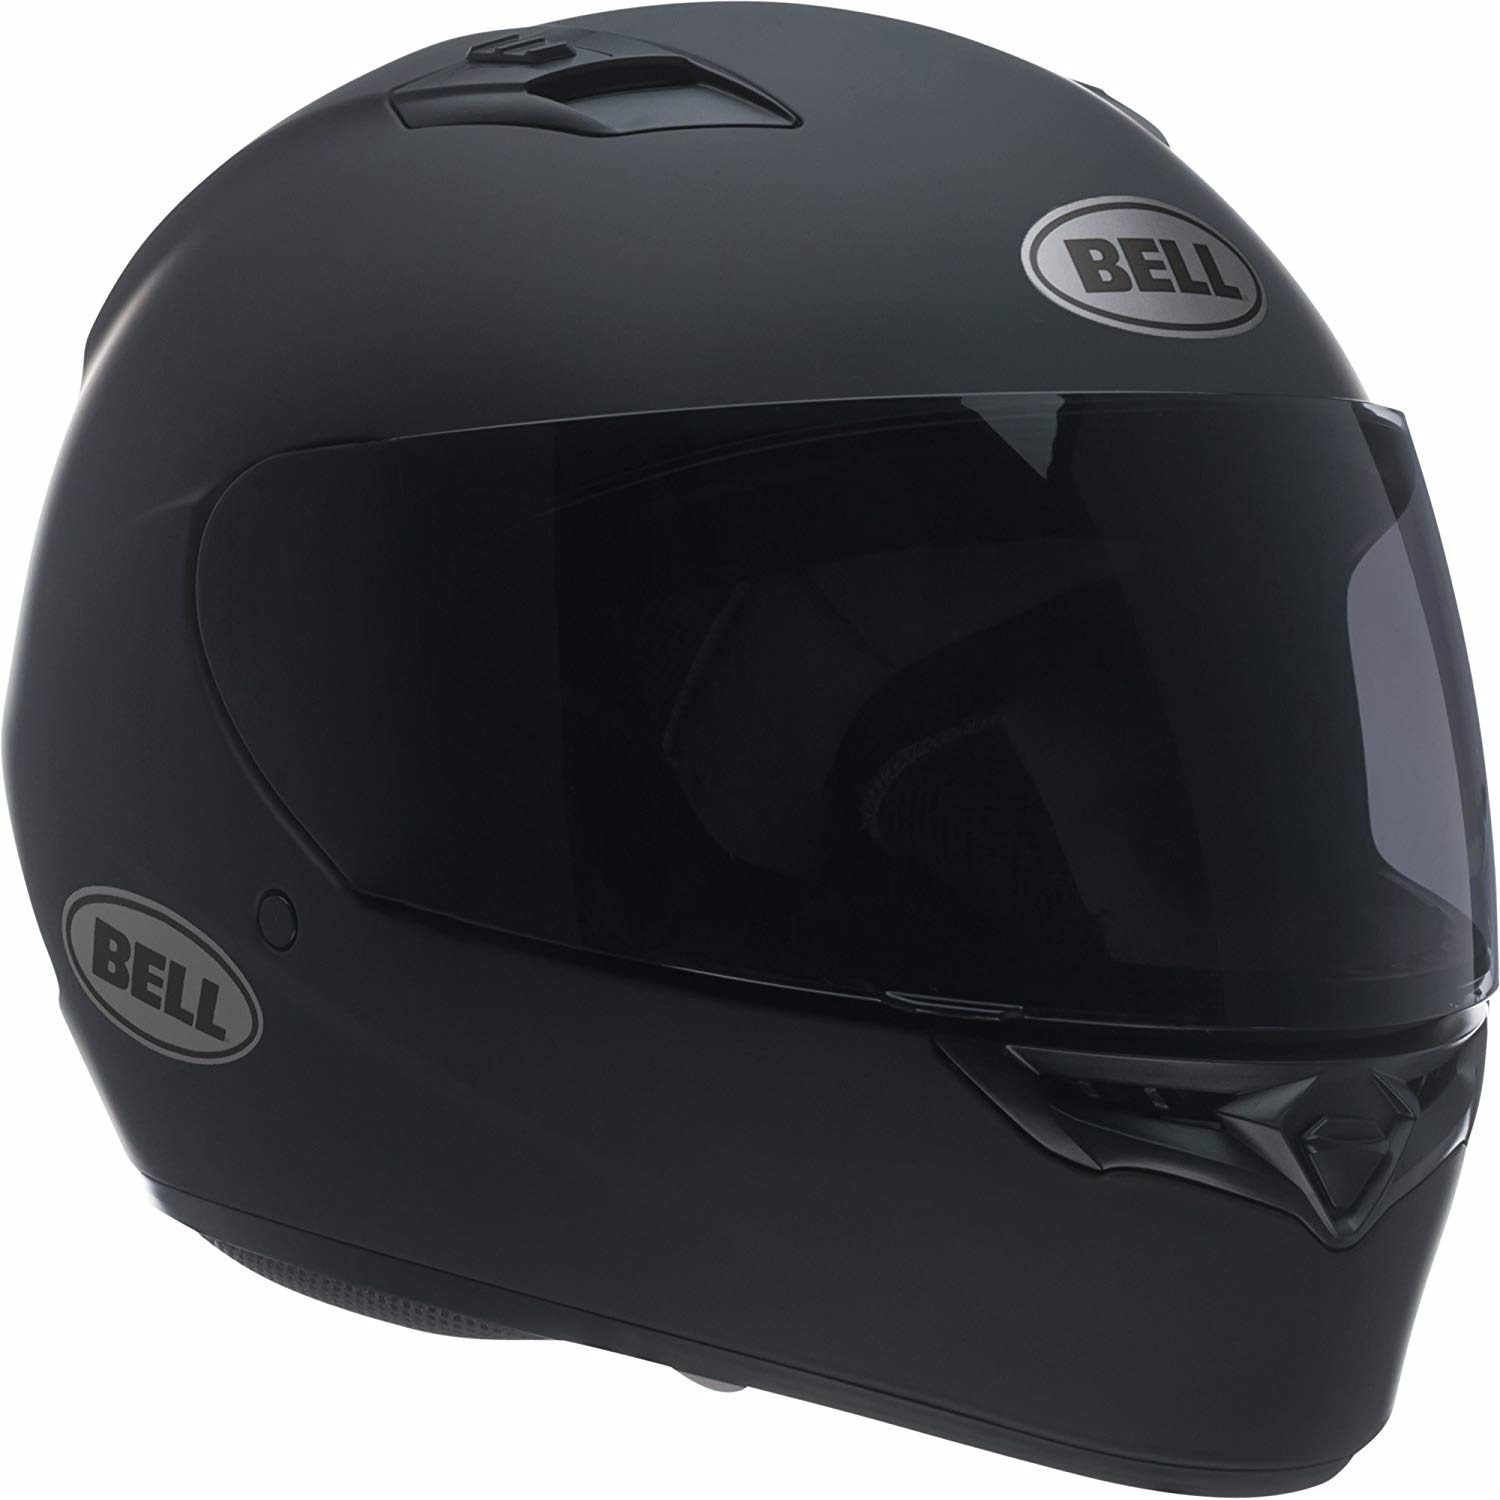 Bell Qualifier Helmet Best Motorcycle Helmet